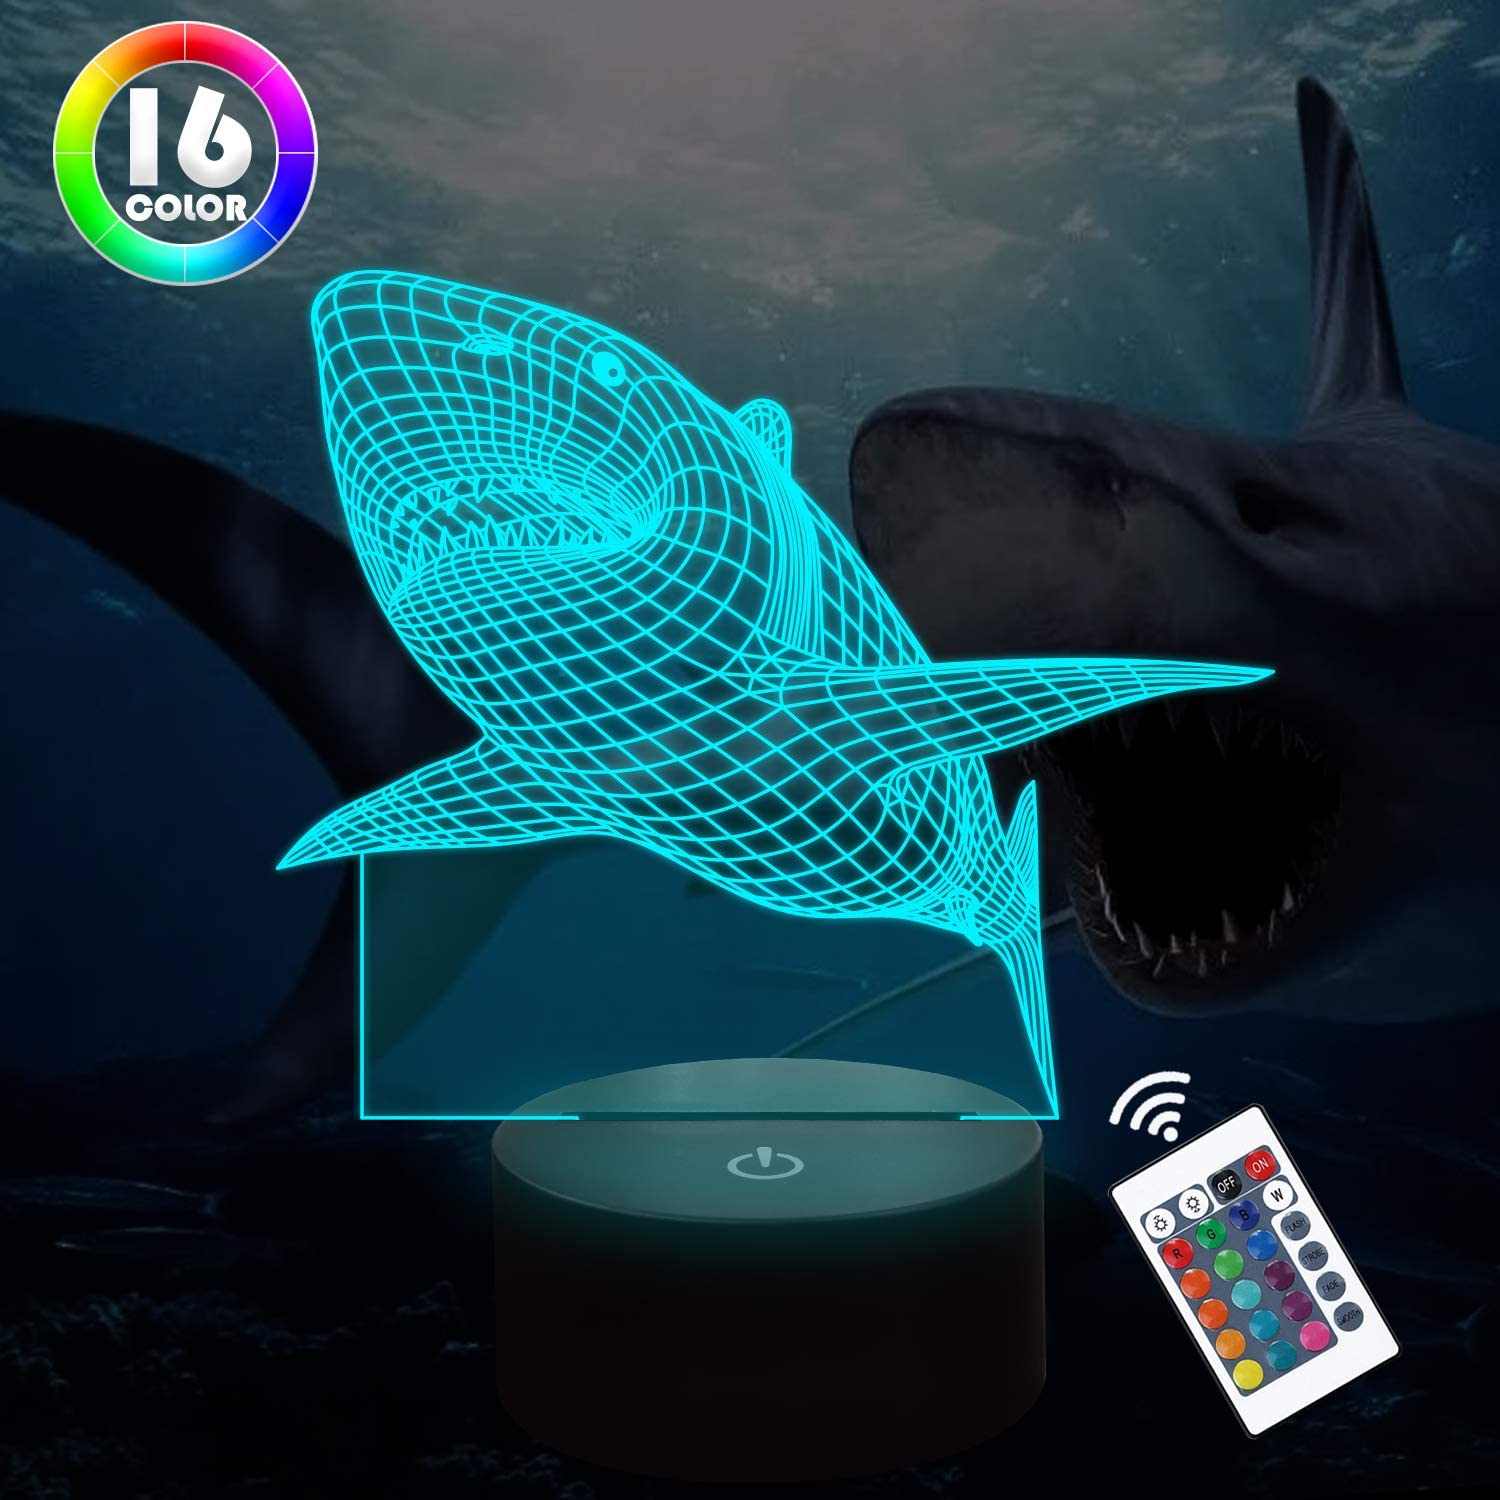 Lampeez 3D Shark Night Light Table Desk Illusion LED Lamp,16 Colors Remote Change Room Home Decor Xmas Birthday Shark Gifts for Child Baby